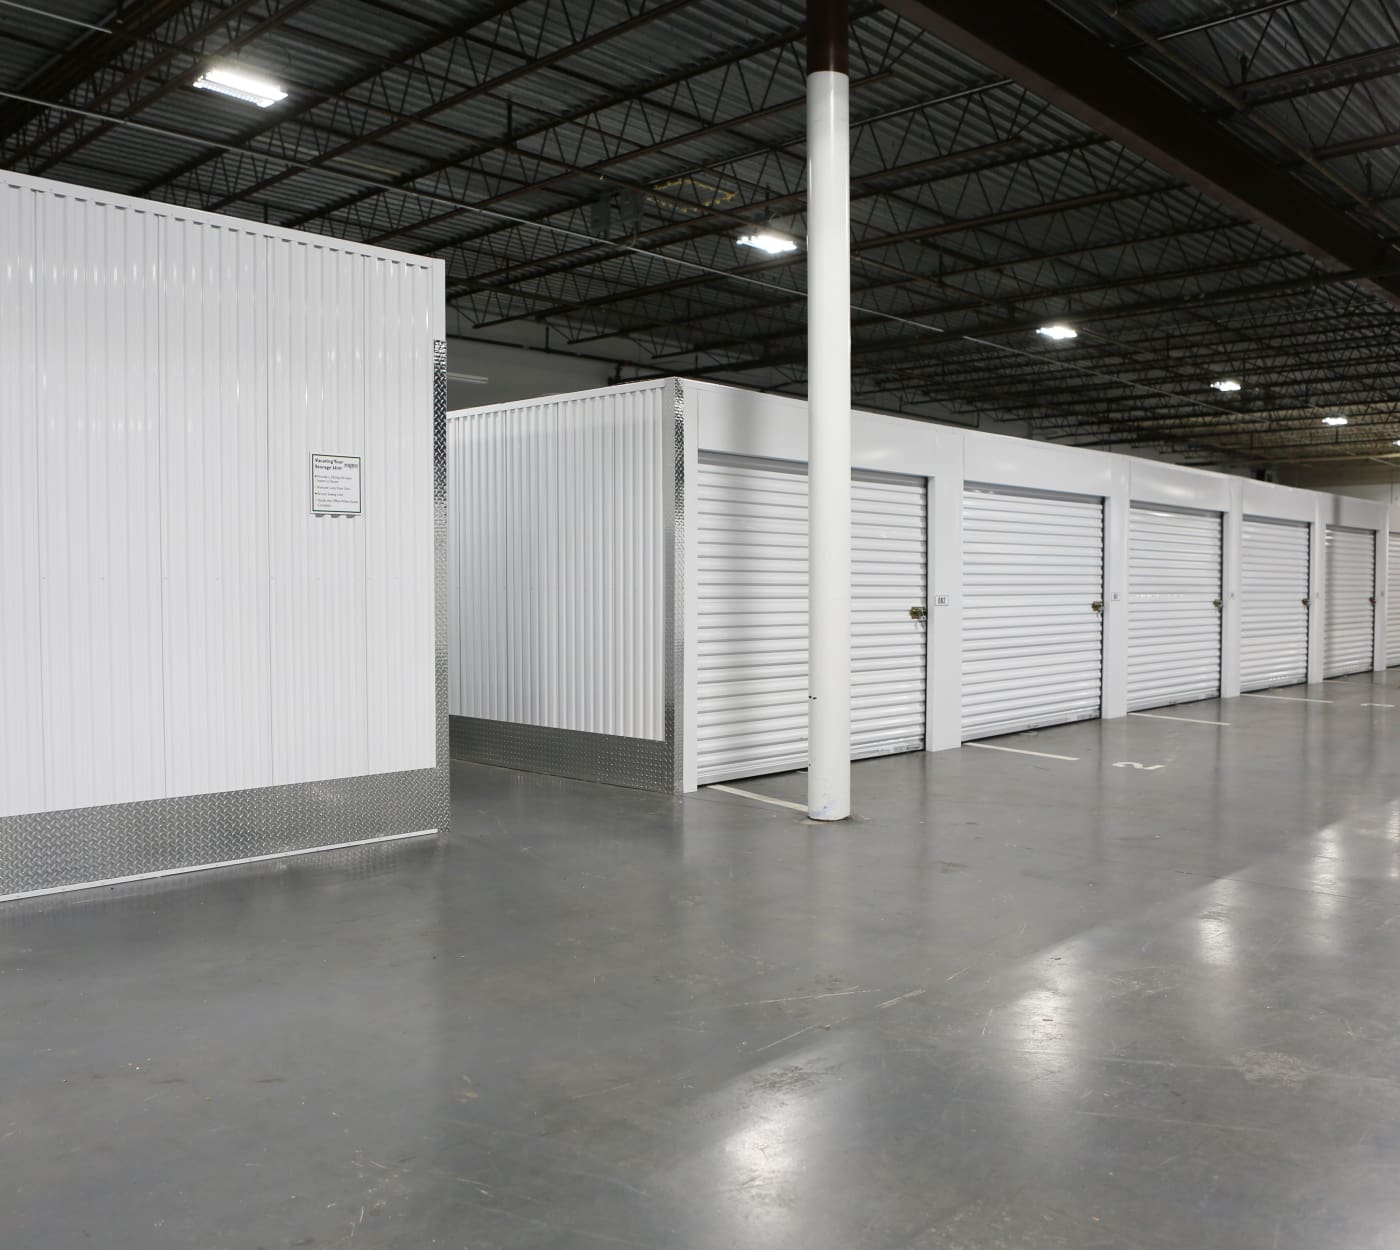 Interior storage units at Midgard Self Storage in Greenville, South Carolina